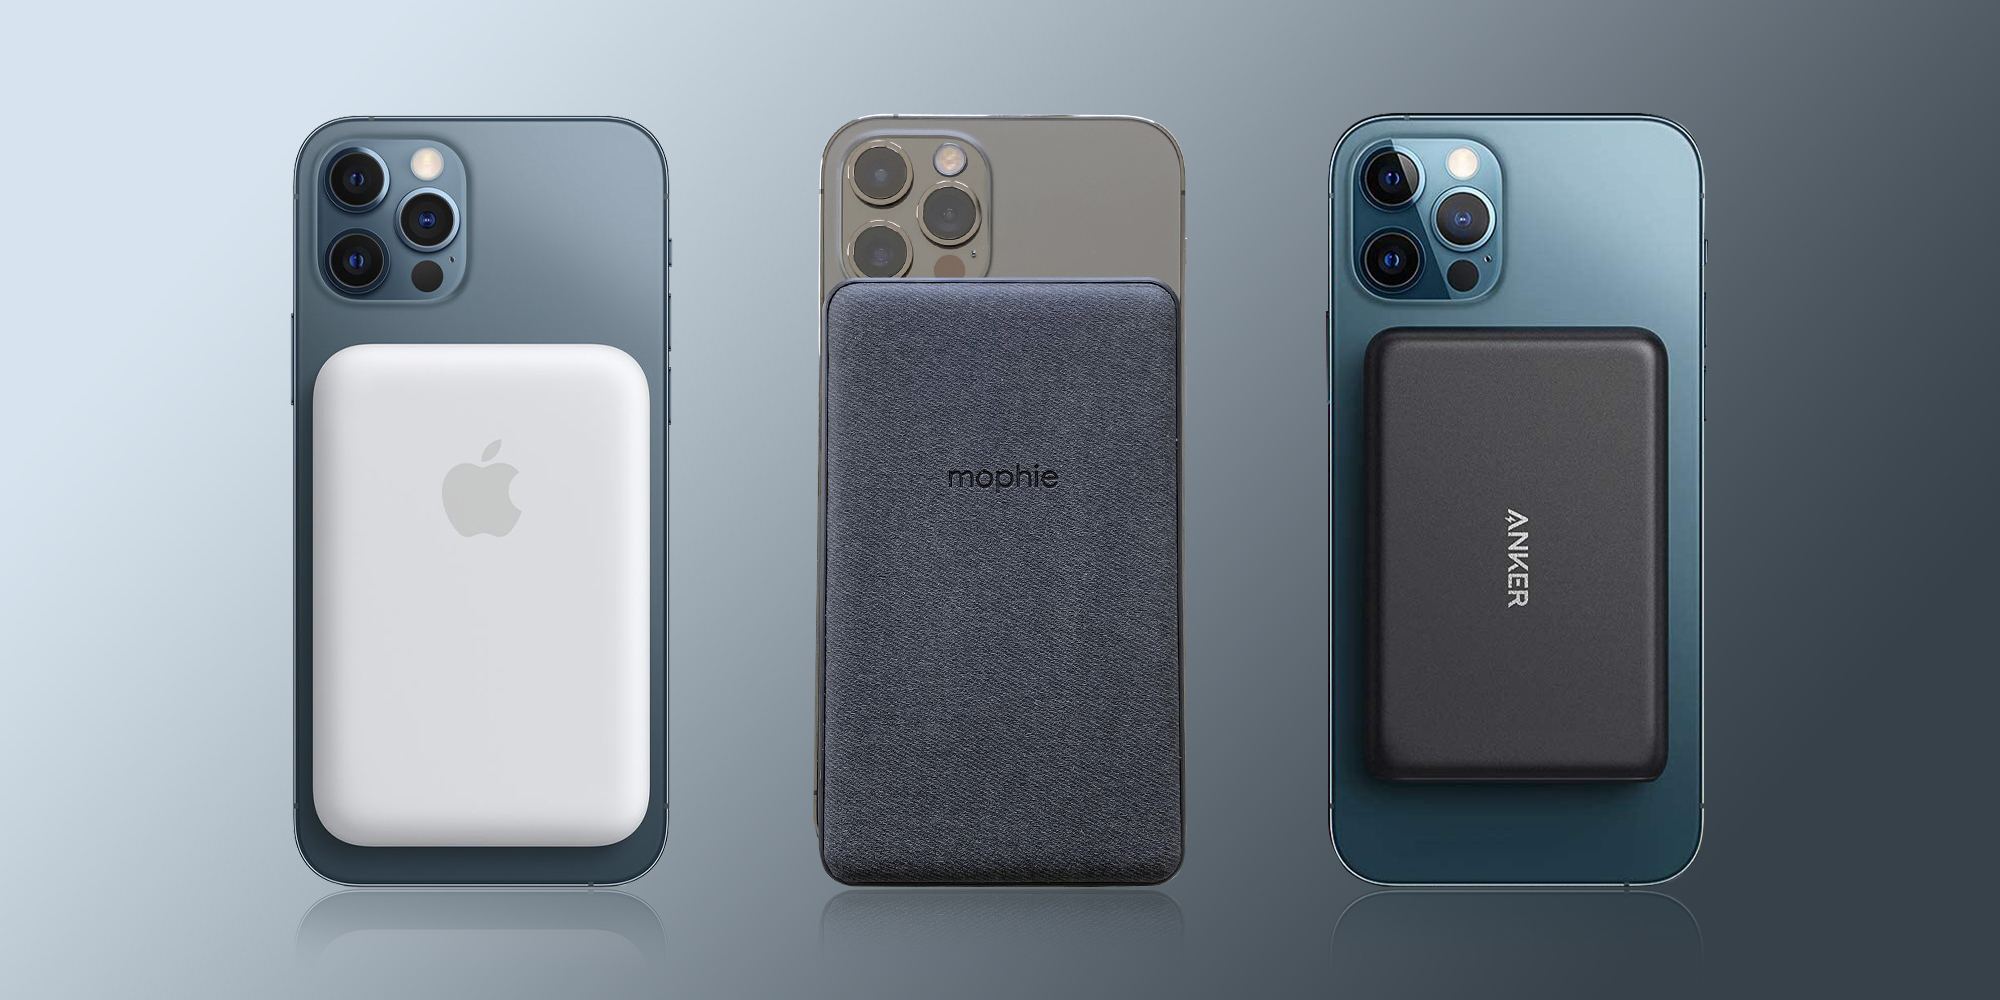 Apple MagSafe Battery Pack vs Mophie and Anker